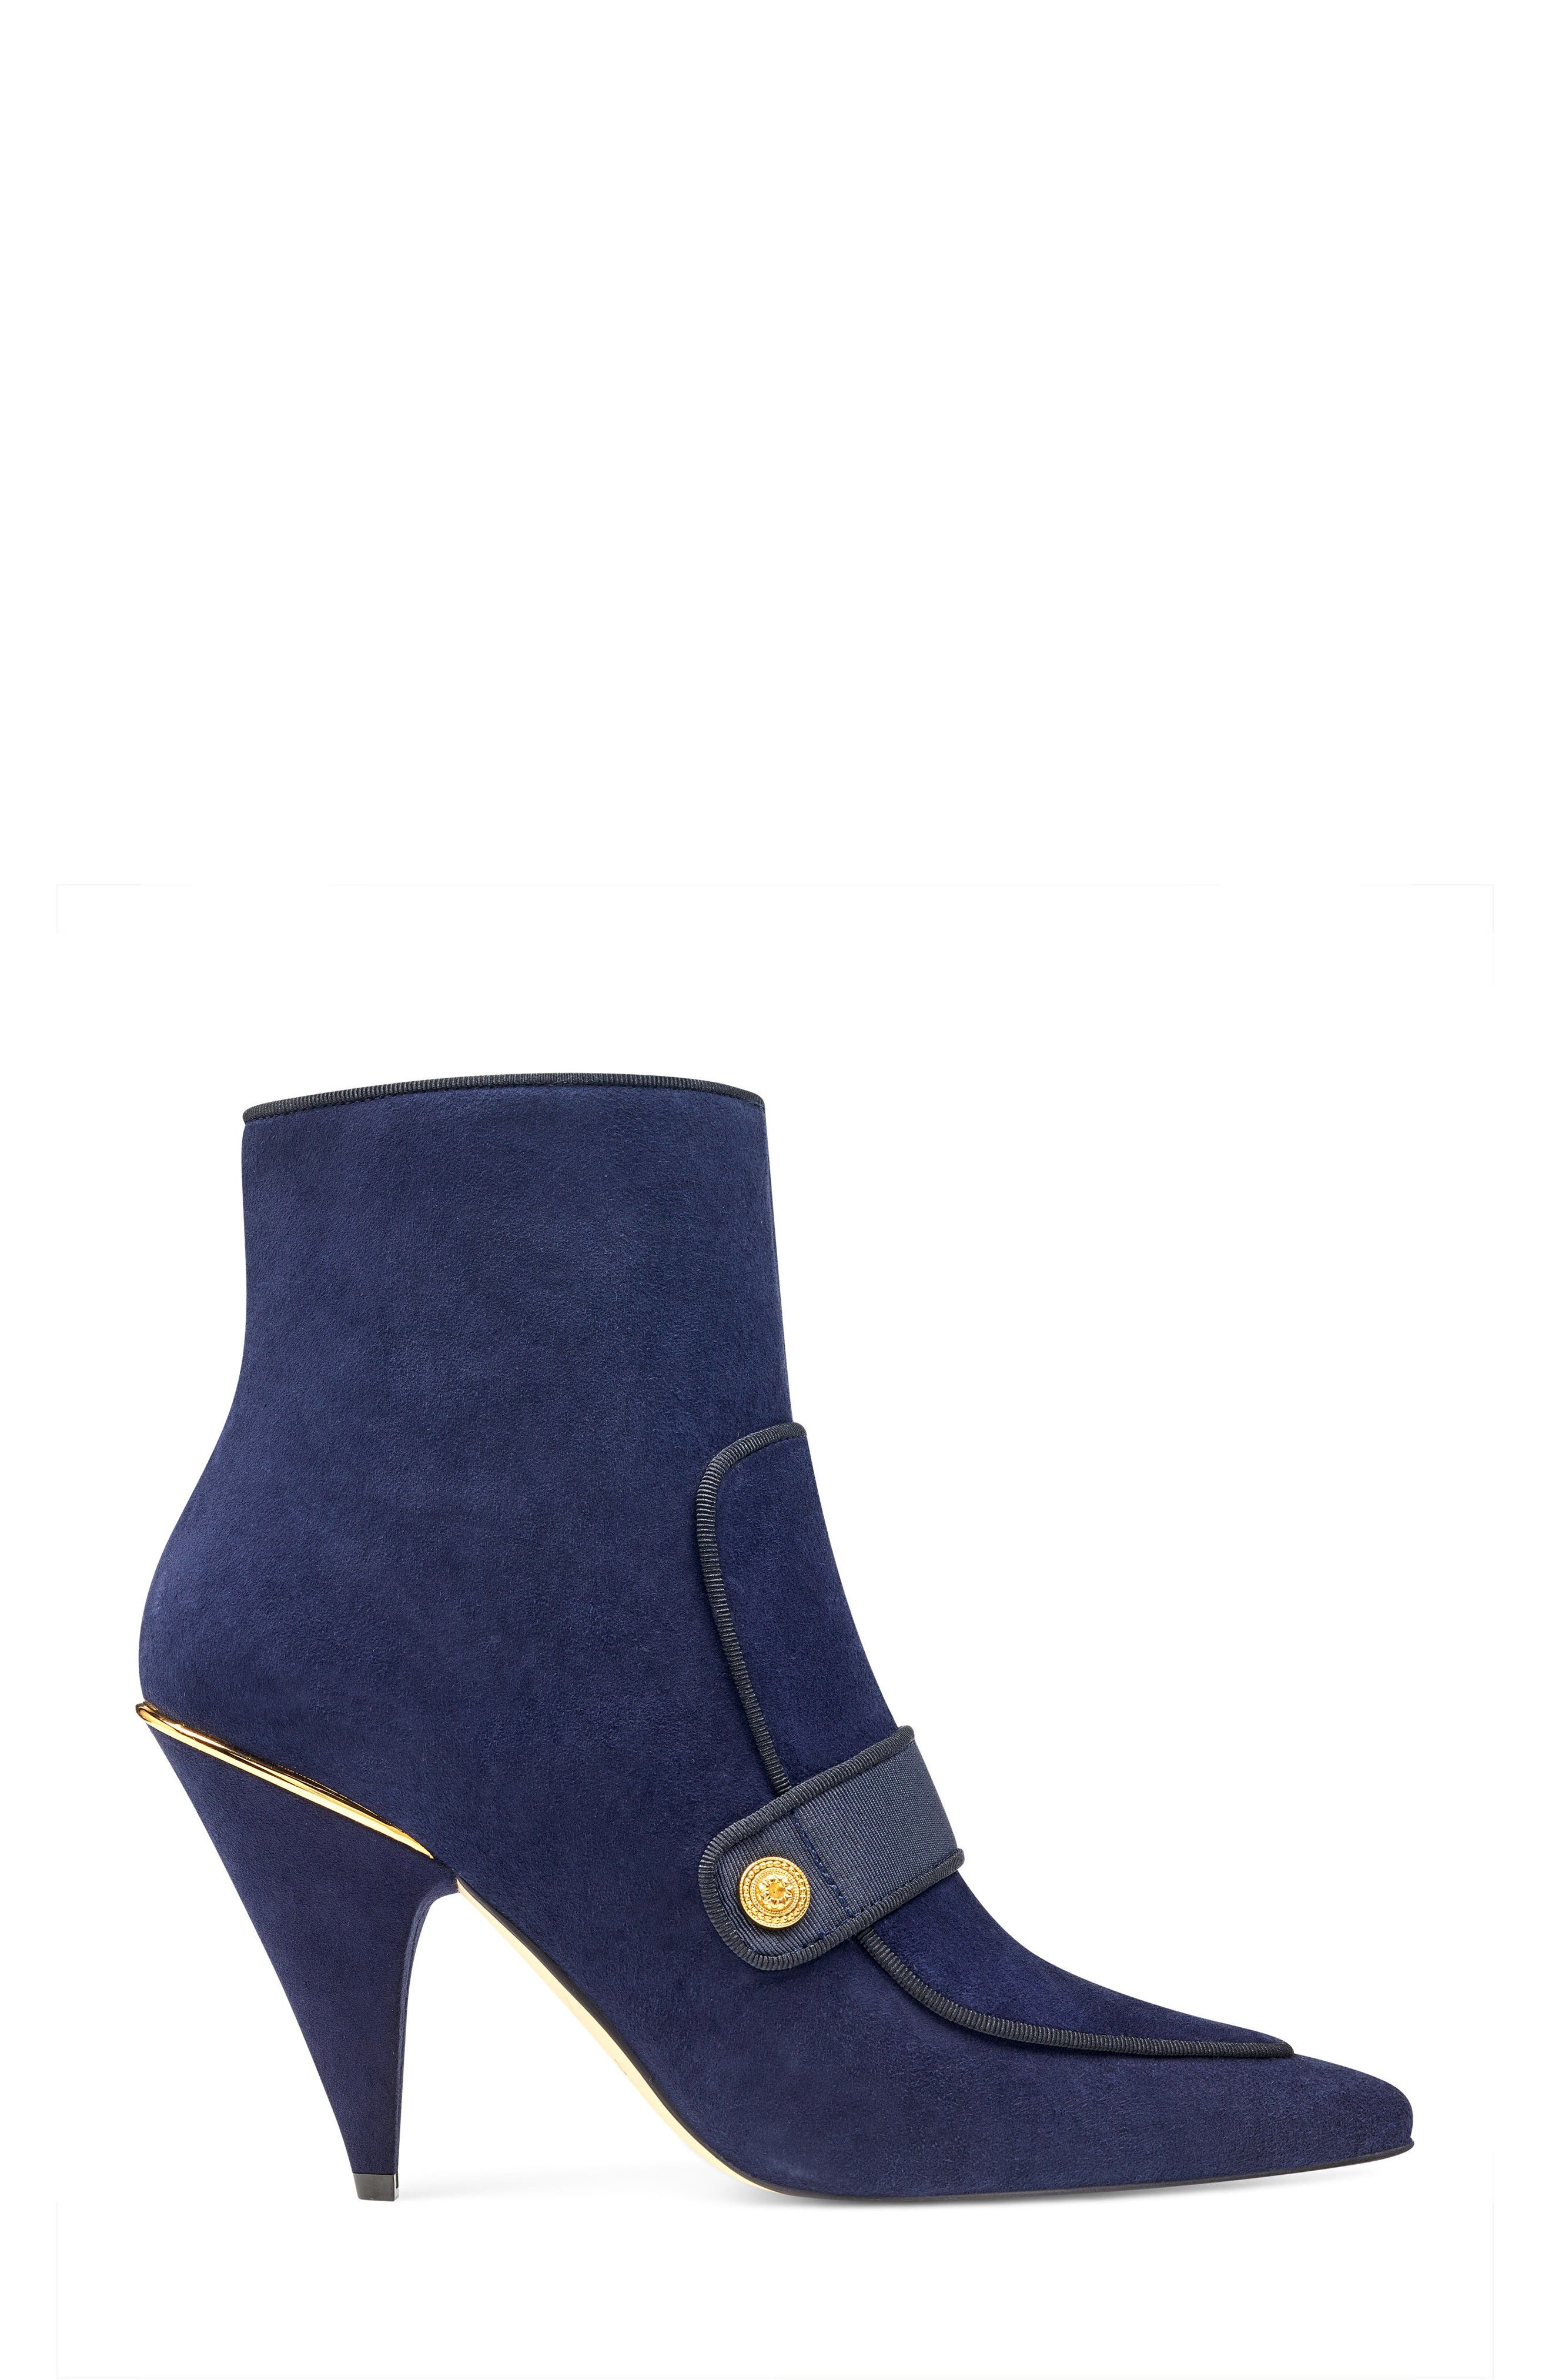 Westham Pointy Toe Bootie,                             Alternate thumbnail 3, color,                             Navy/ Black Suede